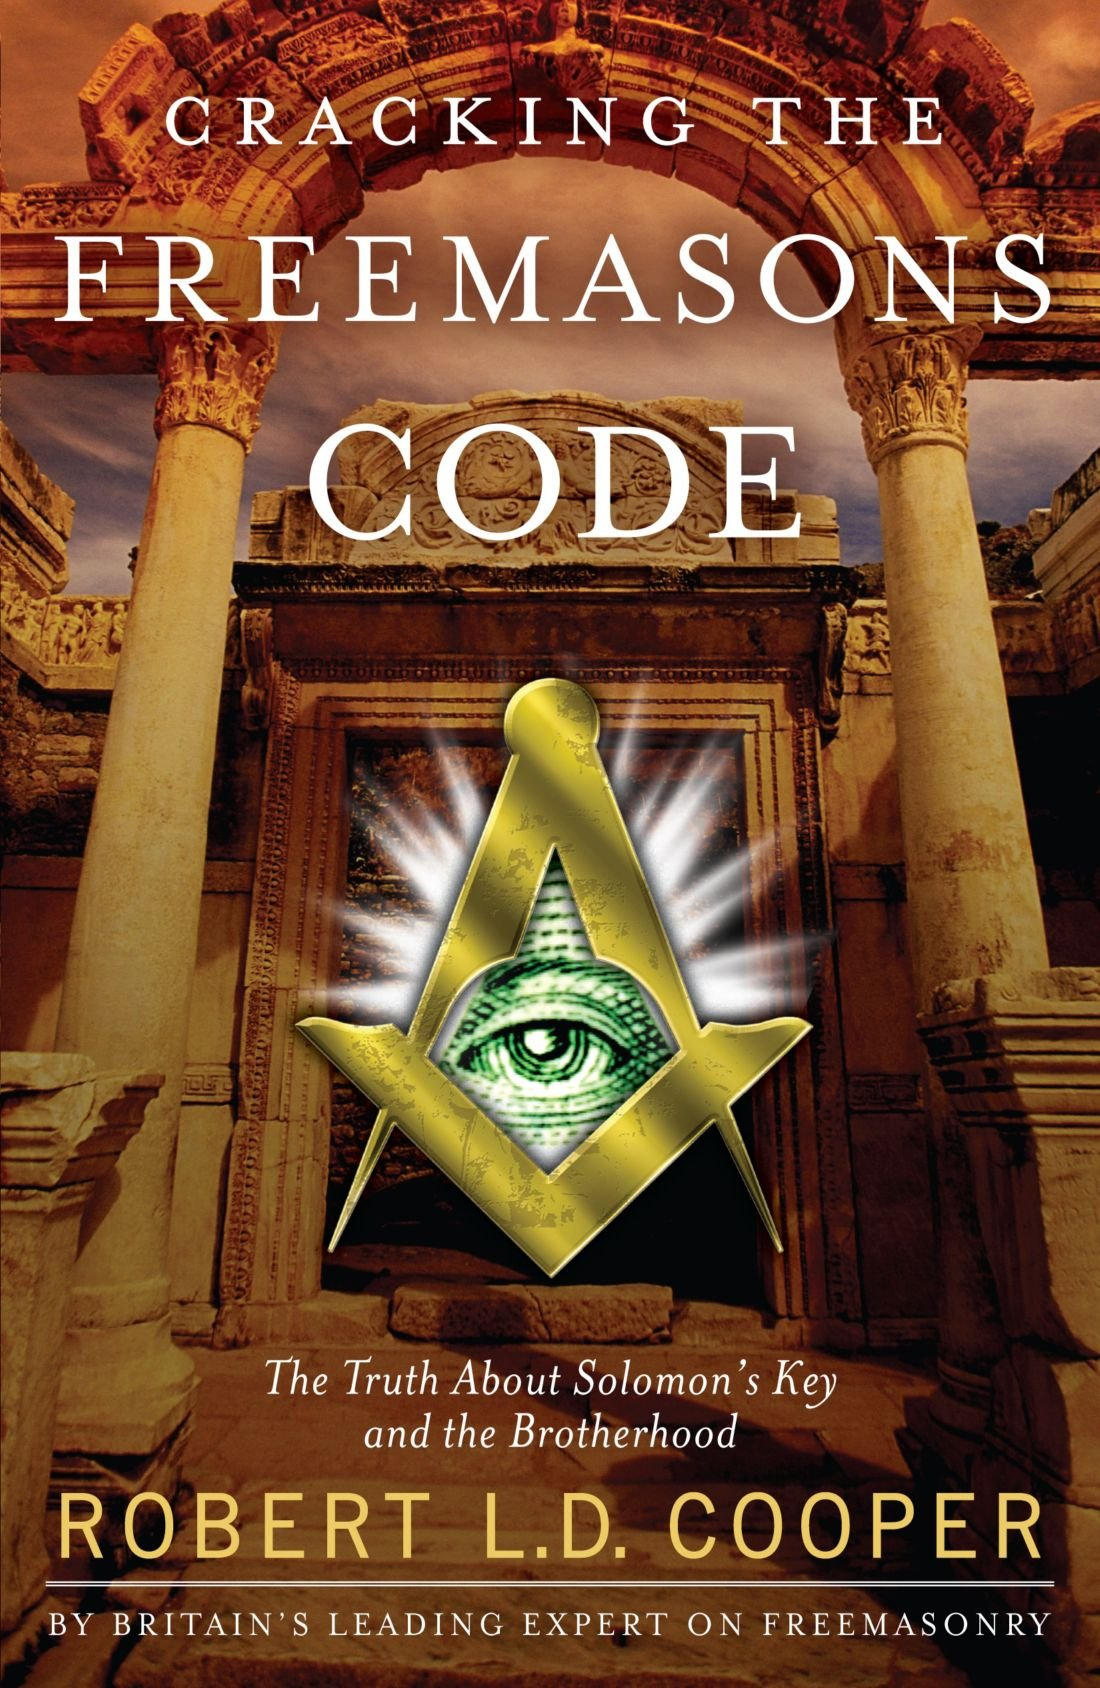 Cracking the freemasons code the truth about solomons key and the cracking the freemasons code the truth about solomons key and the brotherhood robert ld cooper 9781416546825 amazon books fandeluxe Choice Image